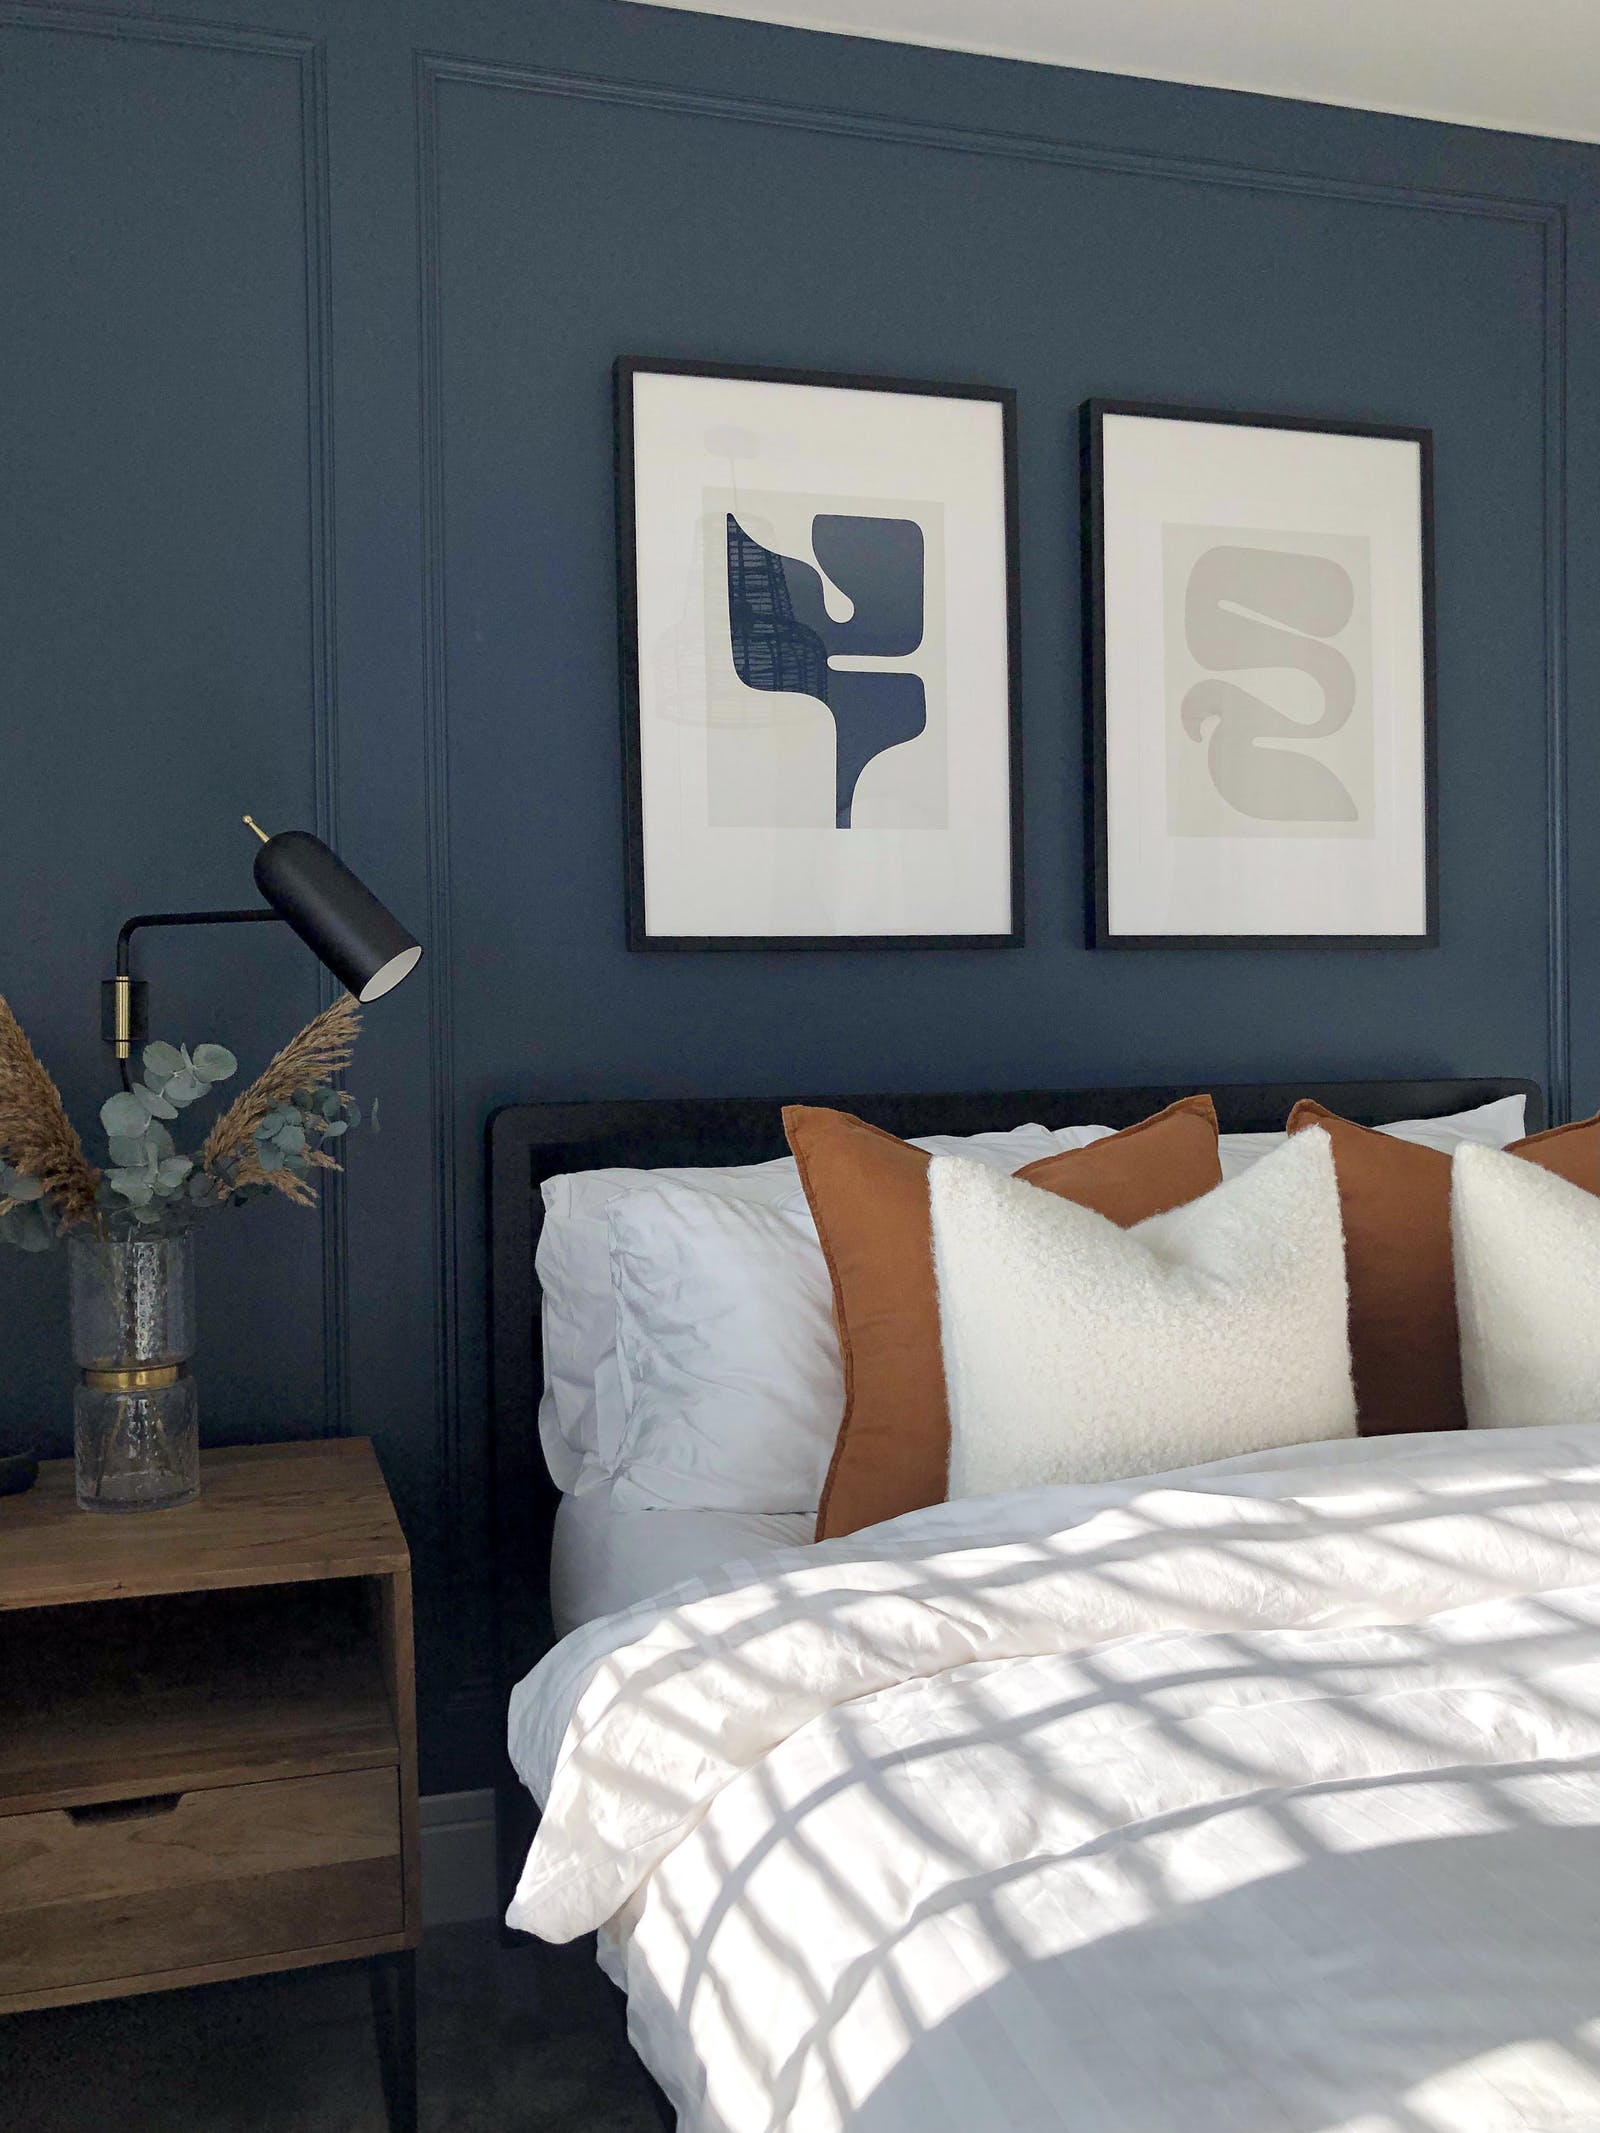 Scandinavian inspired bedroom with dark blue wall panelling